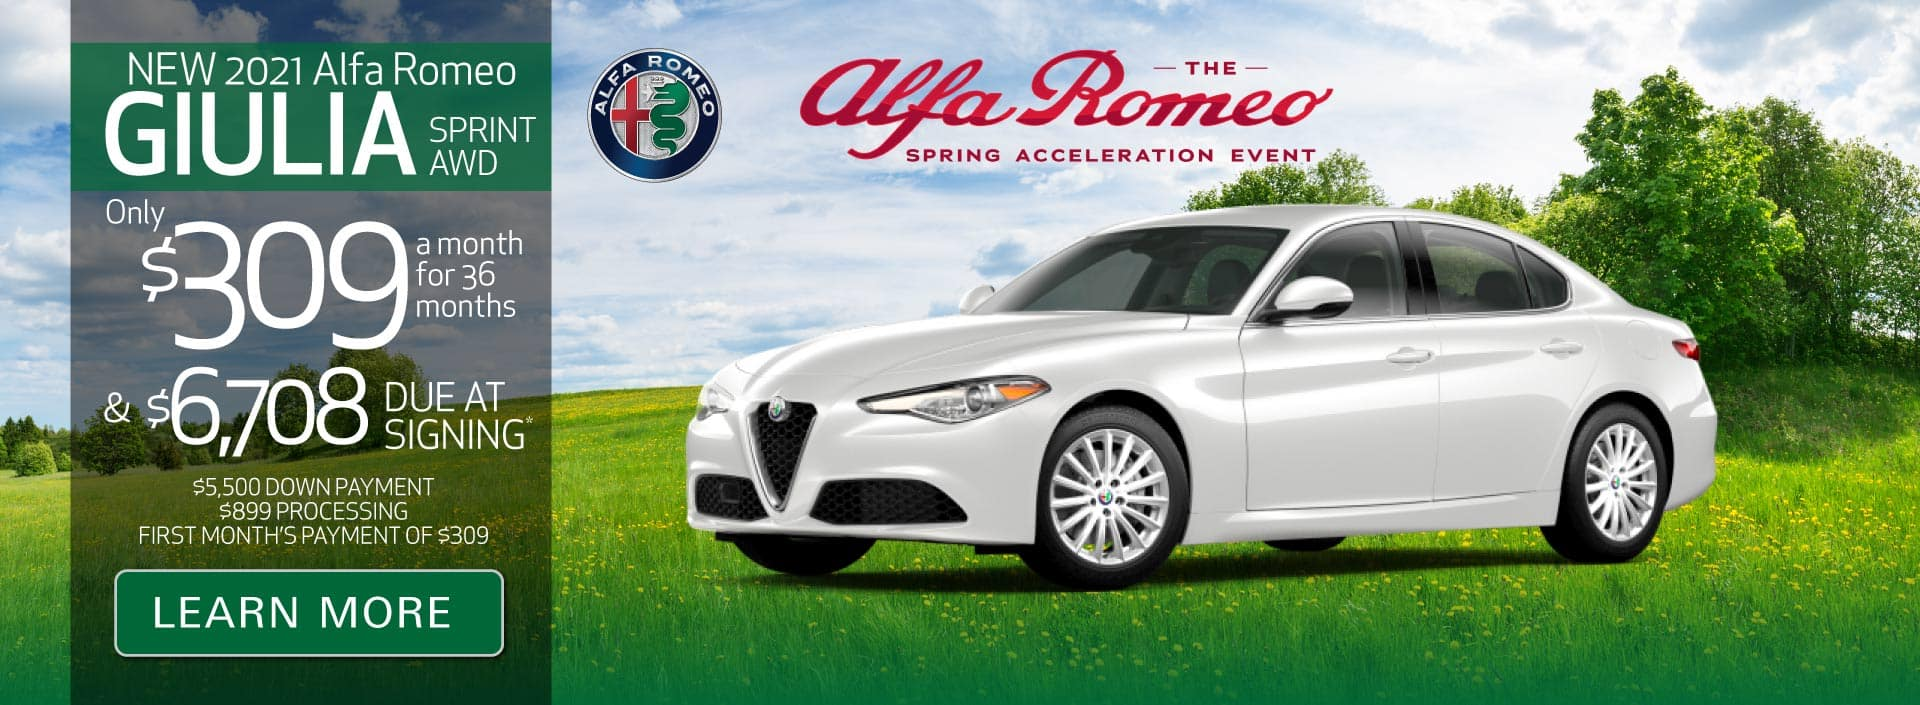 New 2021 Giulia Sprint AWD Only $309 a month for 36 months | Learn More